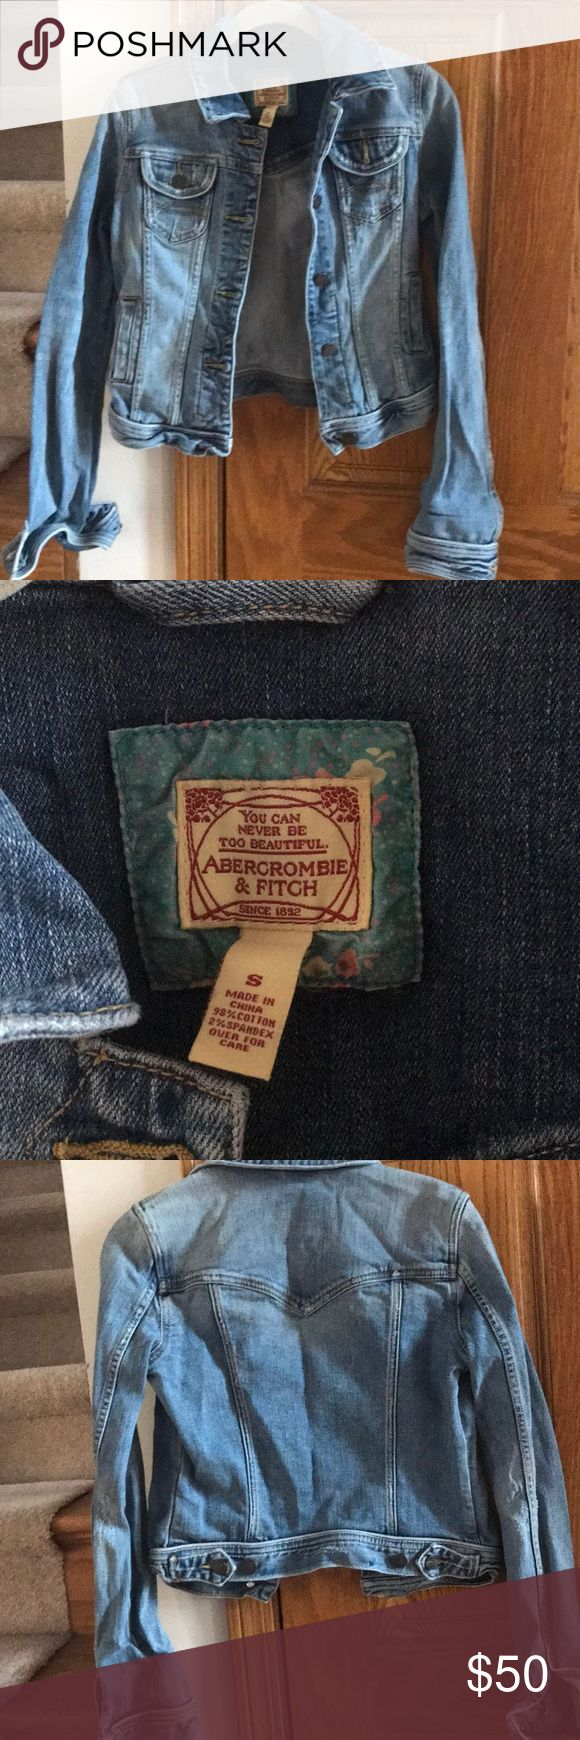 Abercrombie and Fitch Jean Jacket Abercrombie and Fitch light colored denim jacket size small, looks adorable with sleeves rolled up, 4 pockets, no missing buttons, designed with minor distressed details. Abercrombie & Fitch Jackets & Coats Jean Jackets